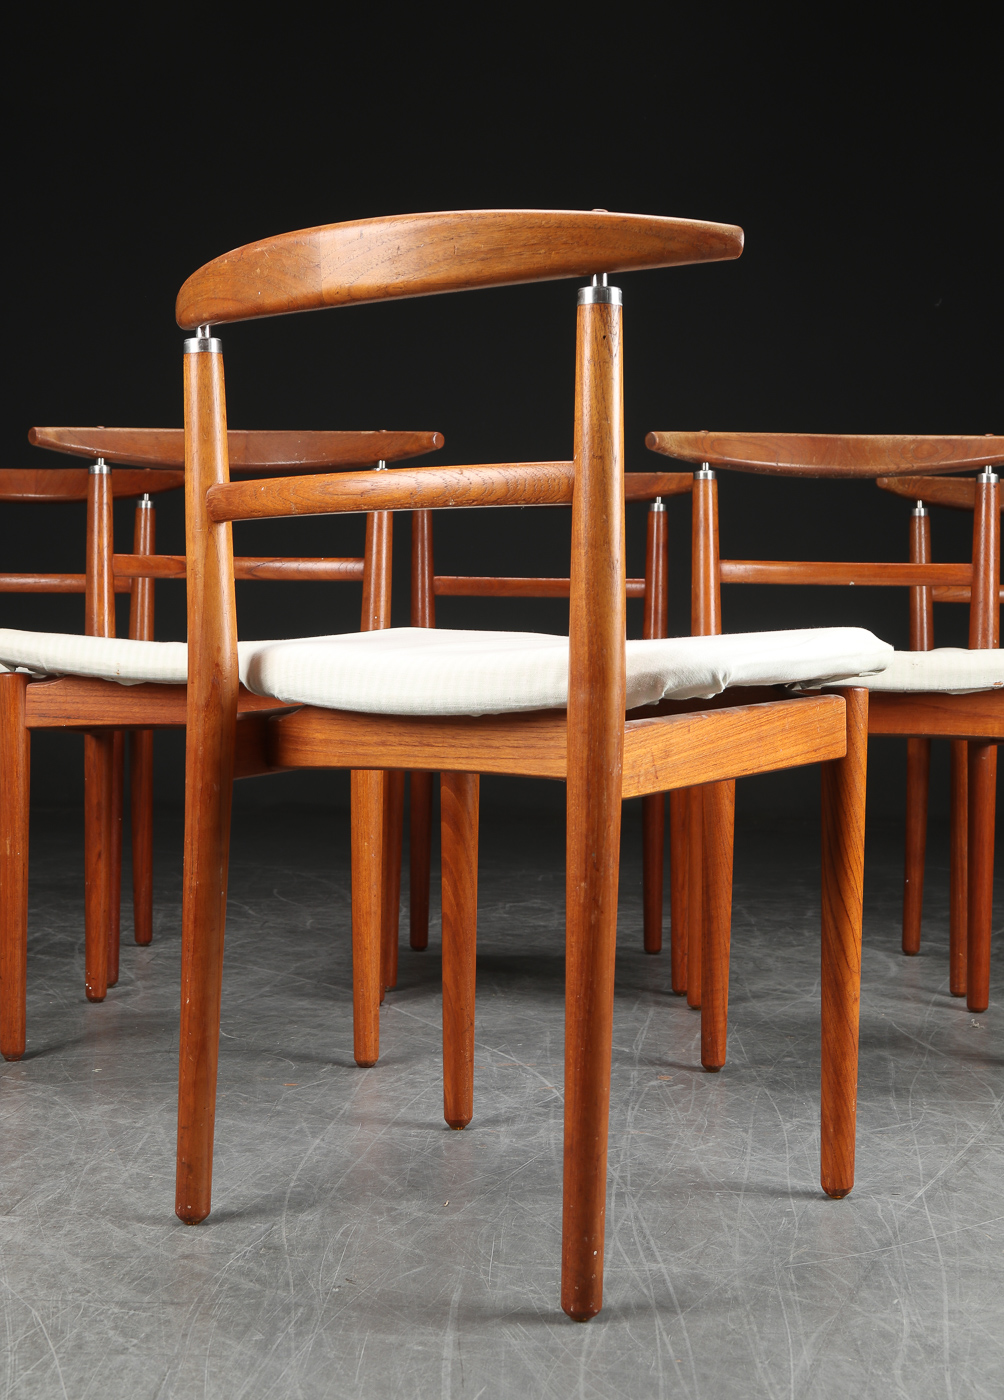 Coming in - Set of 6 teak dining chairs by Helge Sibast